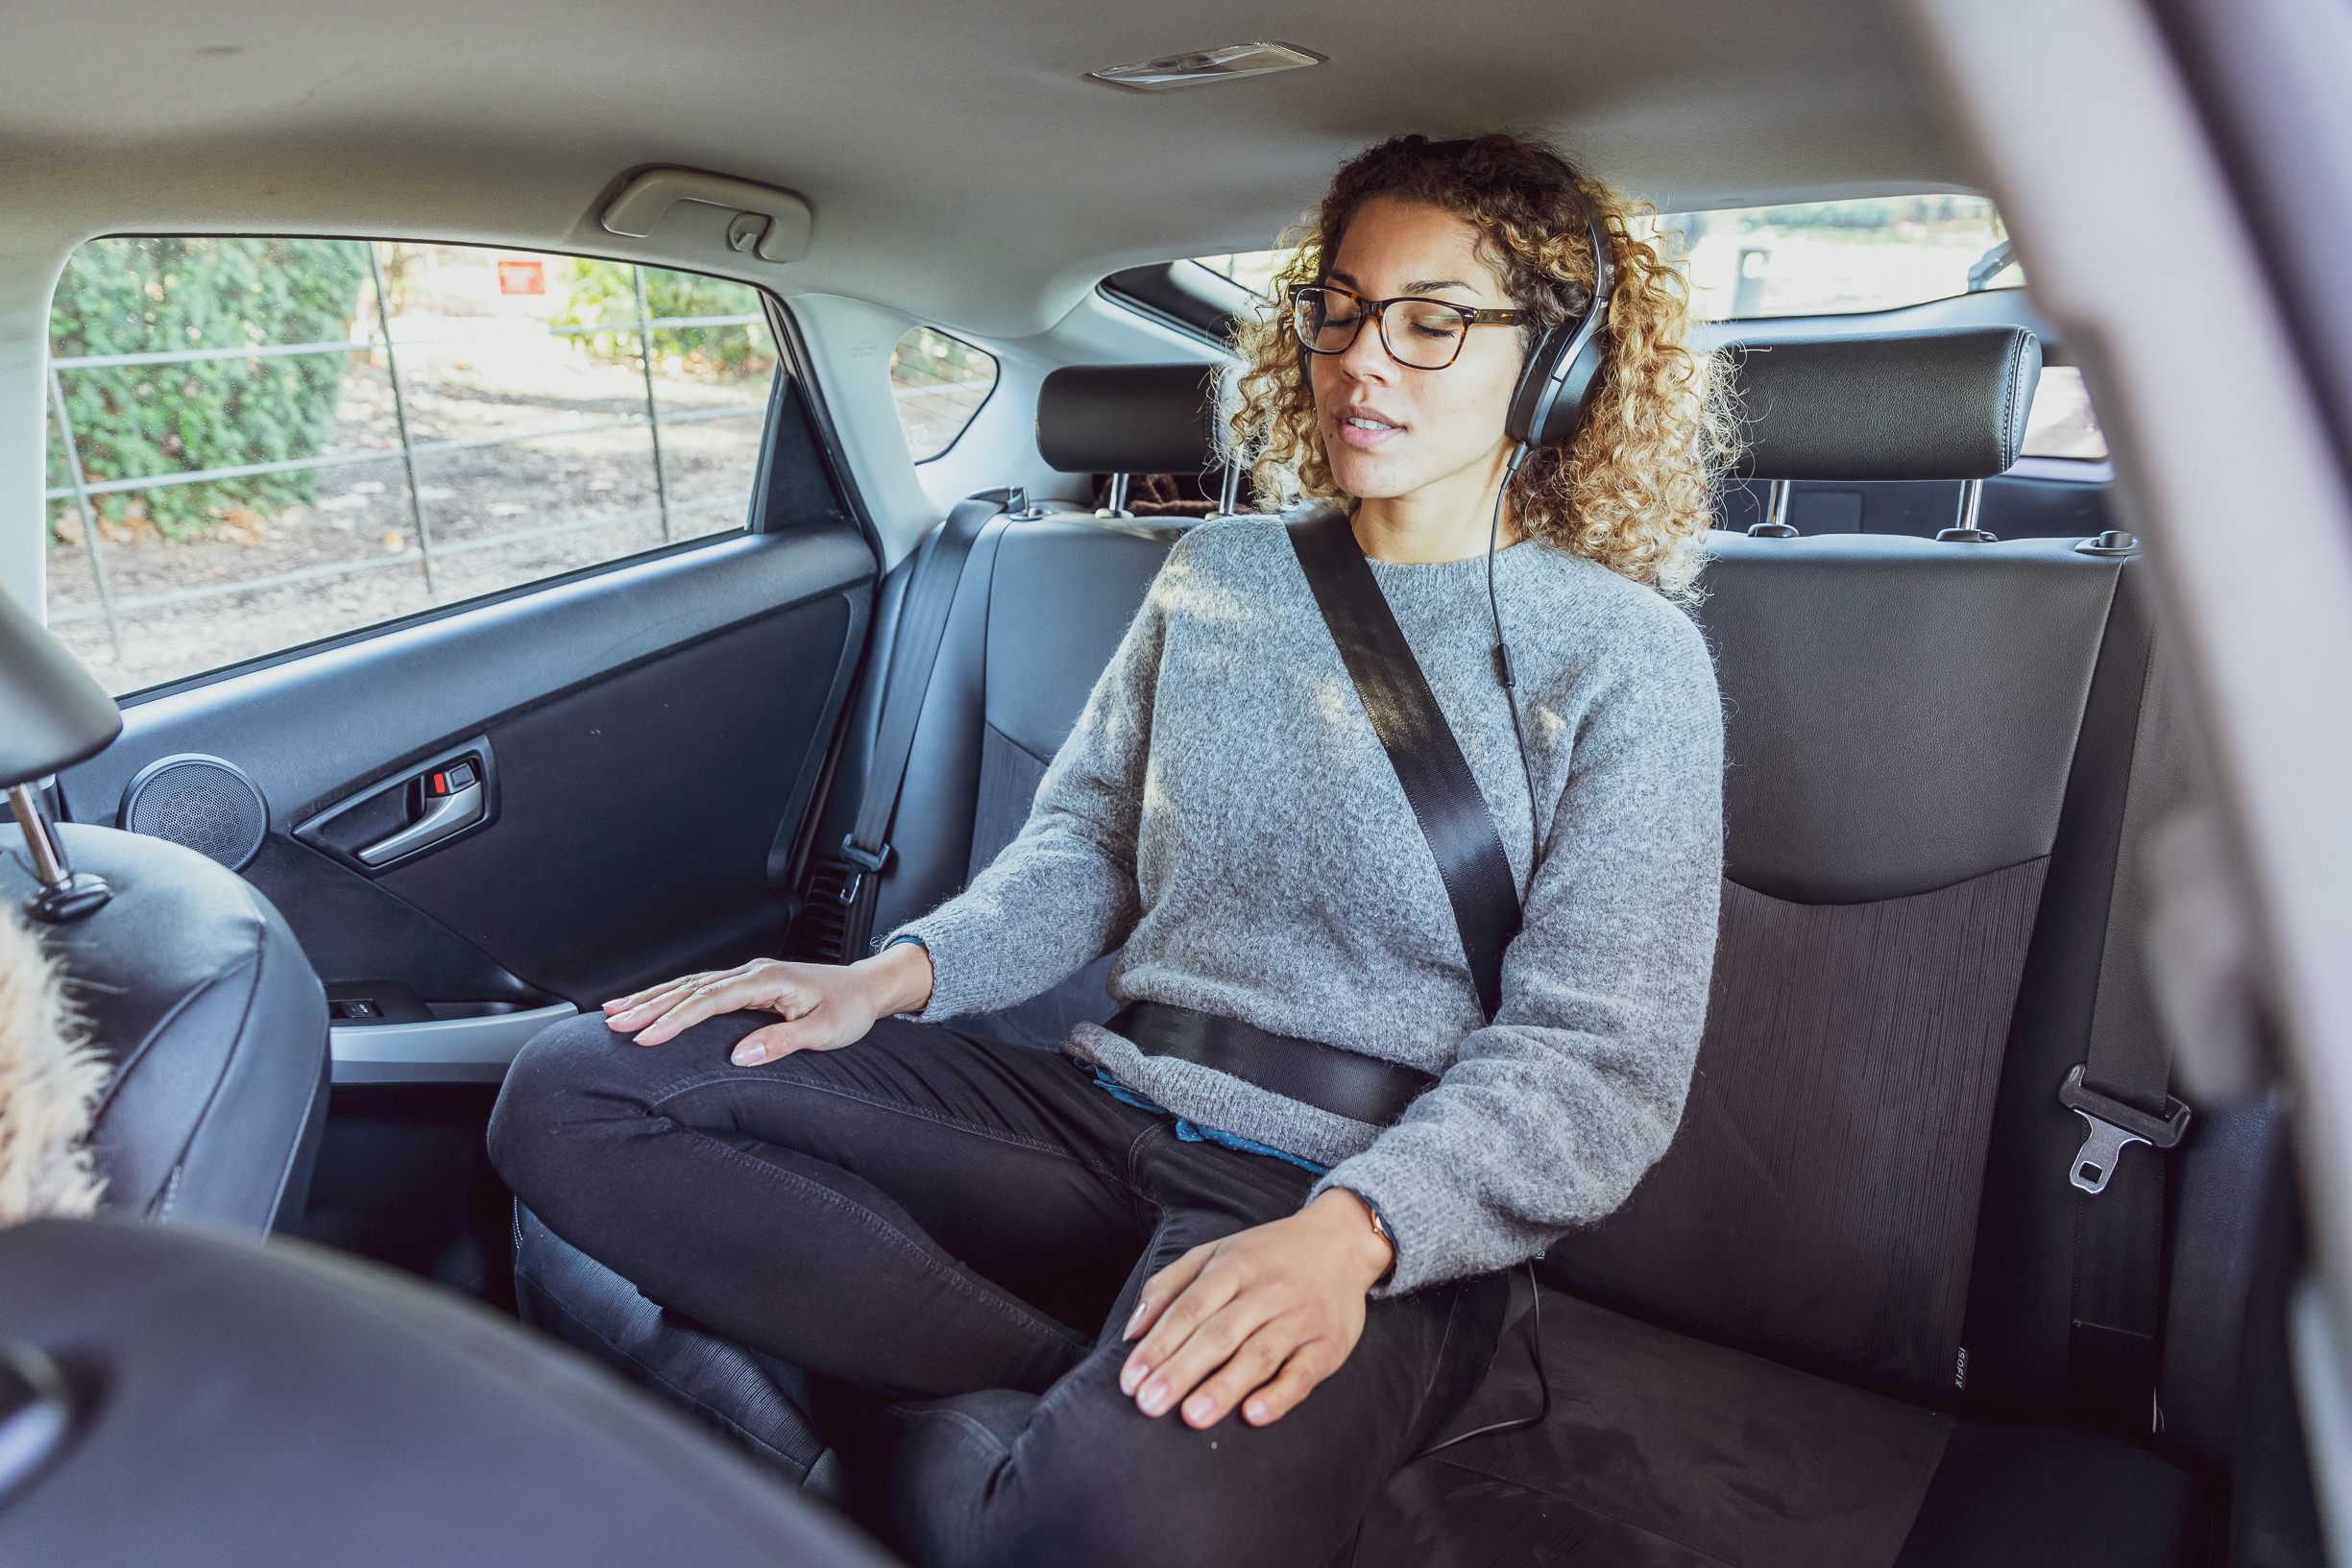 Uber now comes with a meditation app so you can practice mindfulness on your journey